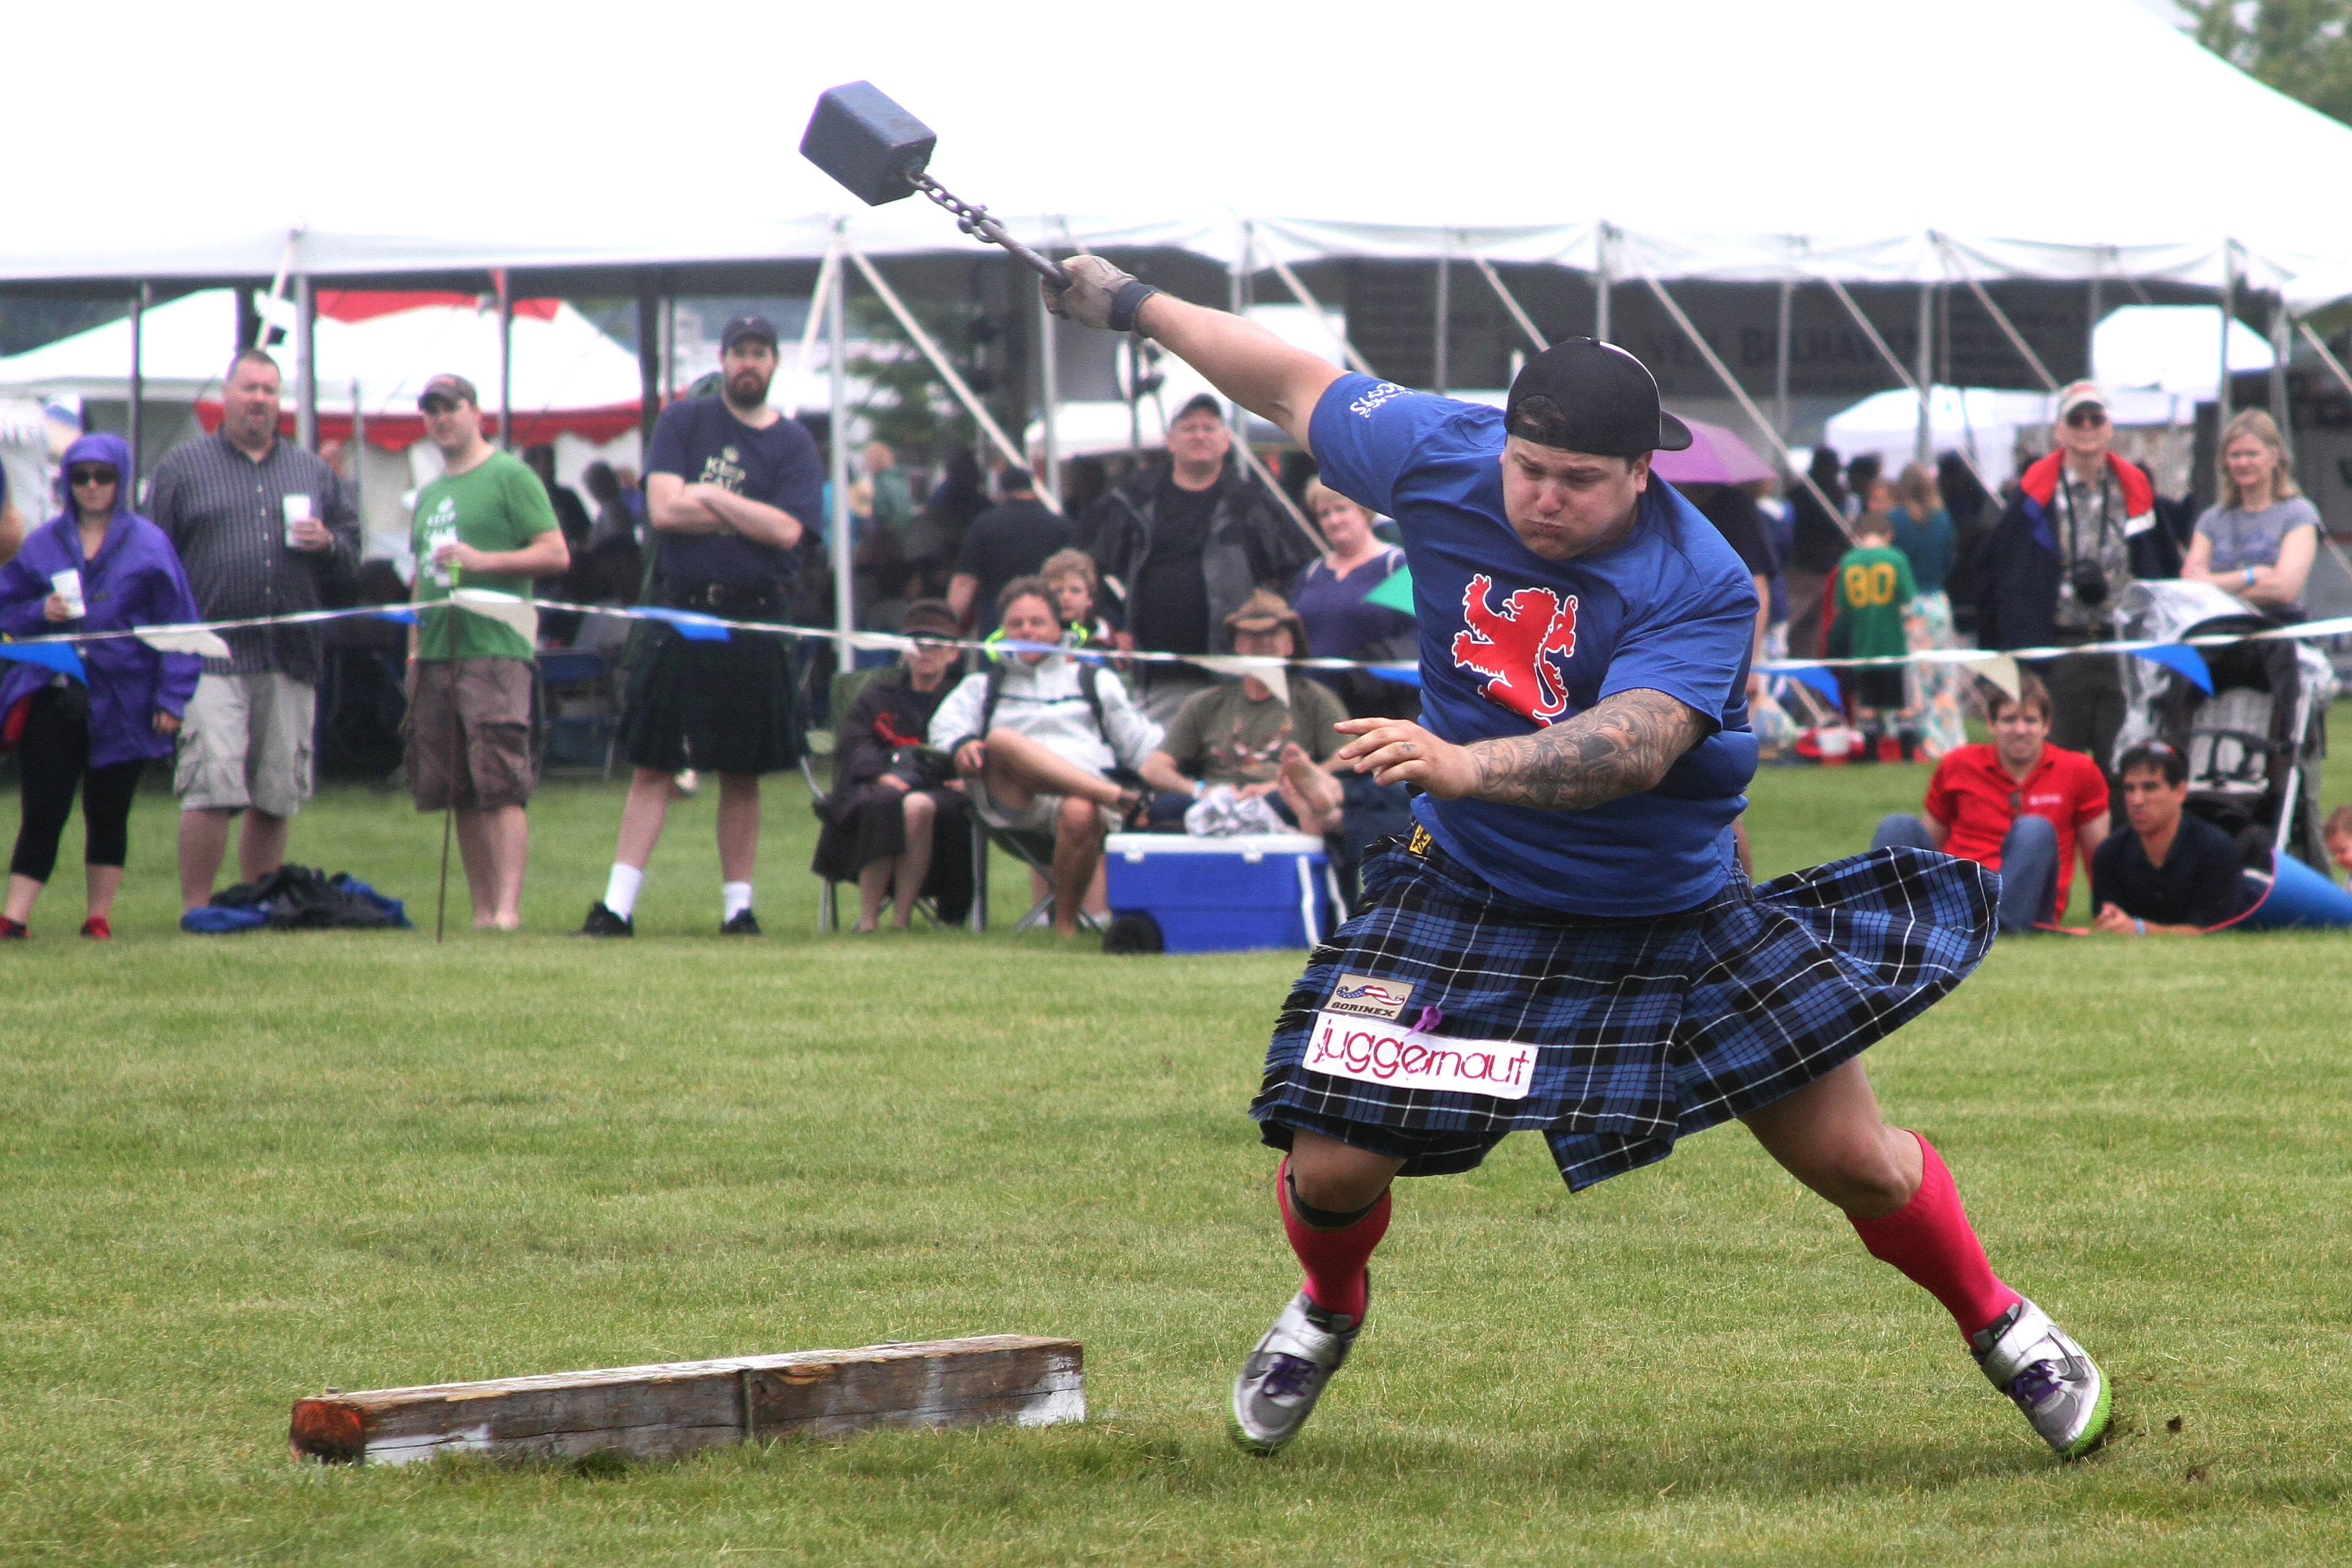 Matt Vincent competed in the 28-pound weight throw for distance last summer in the Scottish Festival and Highland Games at Hamilton Lakes in Itasca.